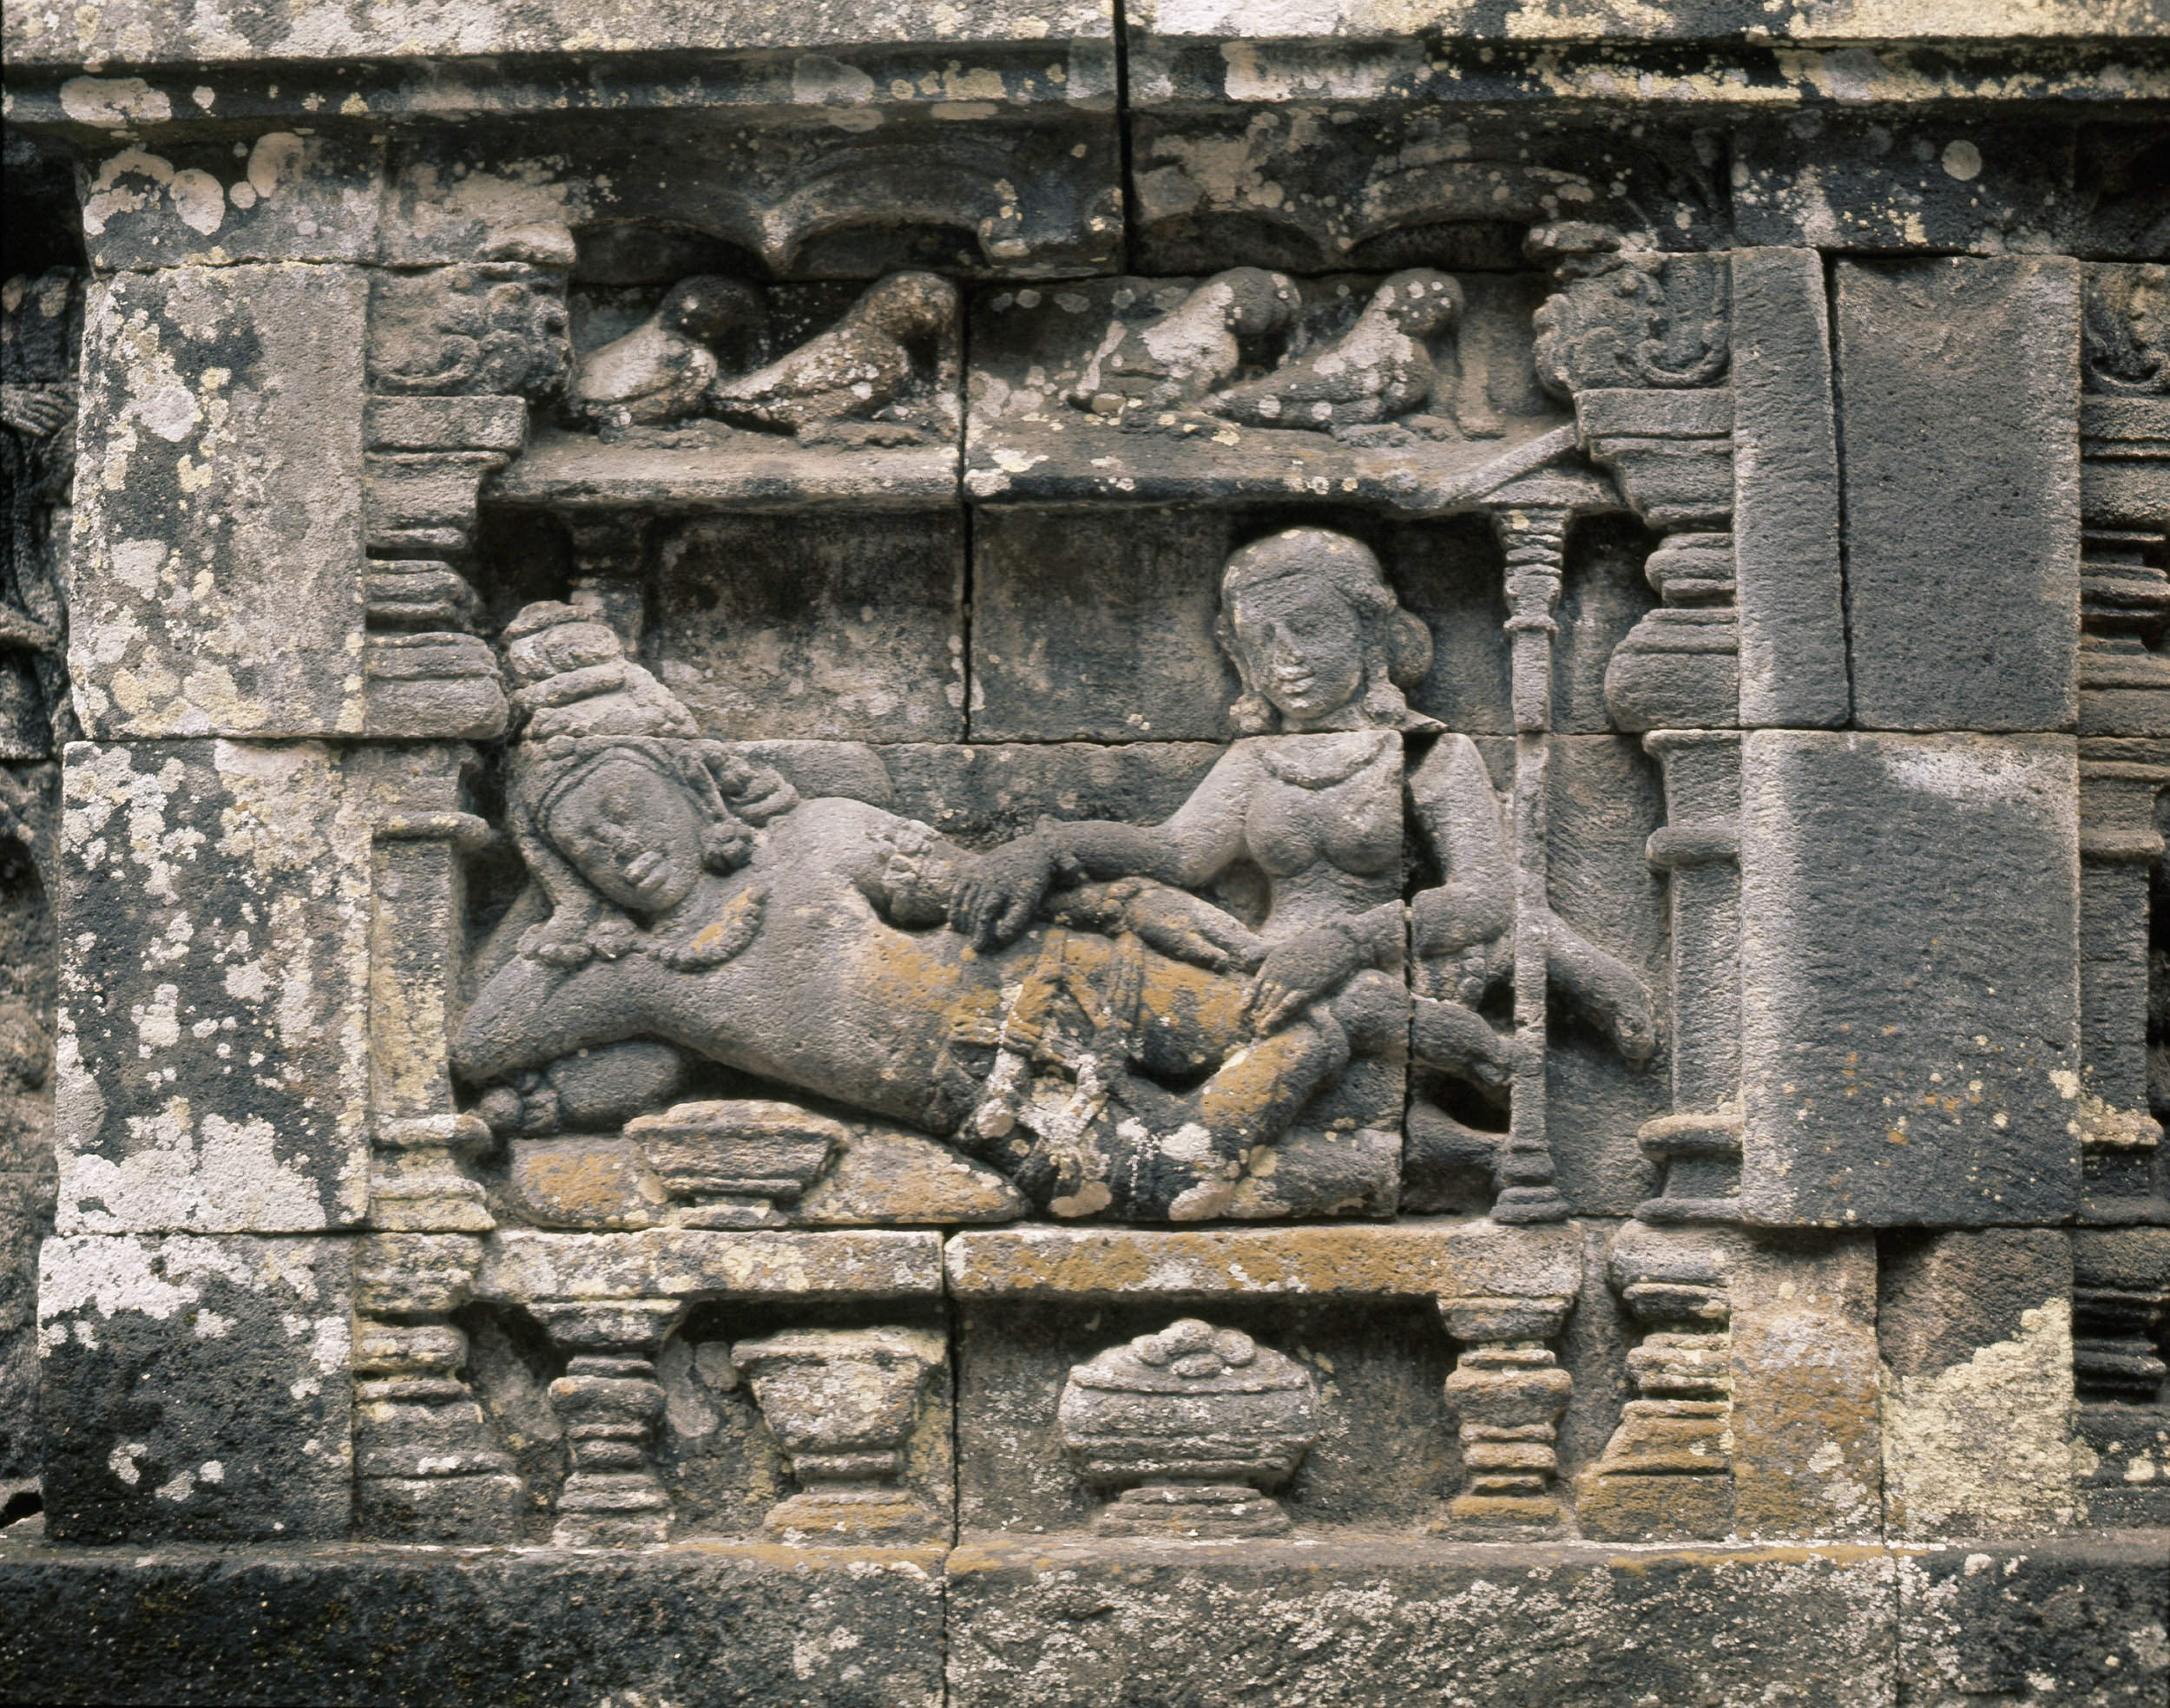 The reliefs on the terraces of Borobudur depict scenes from the life of Buddha. The Palace of Queen Maya. Country of Origin: Indonesia. Culture: Buddhist. Date/Period: 8th C. Place of Origin: Central Java. Credit Line: Werner Forman Archive.